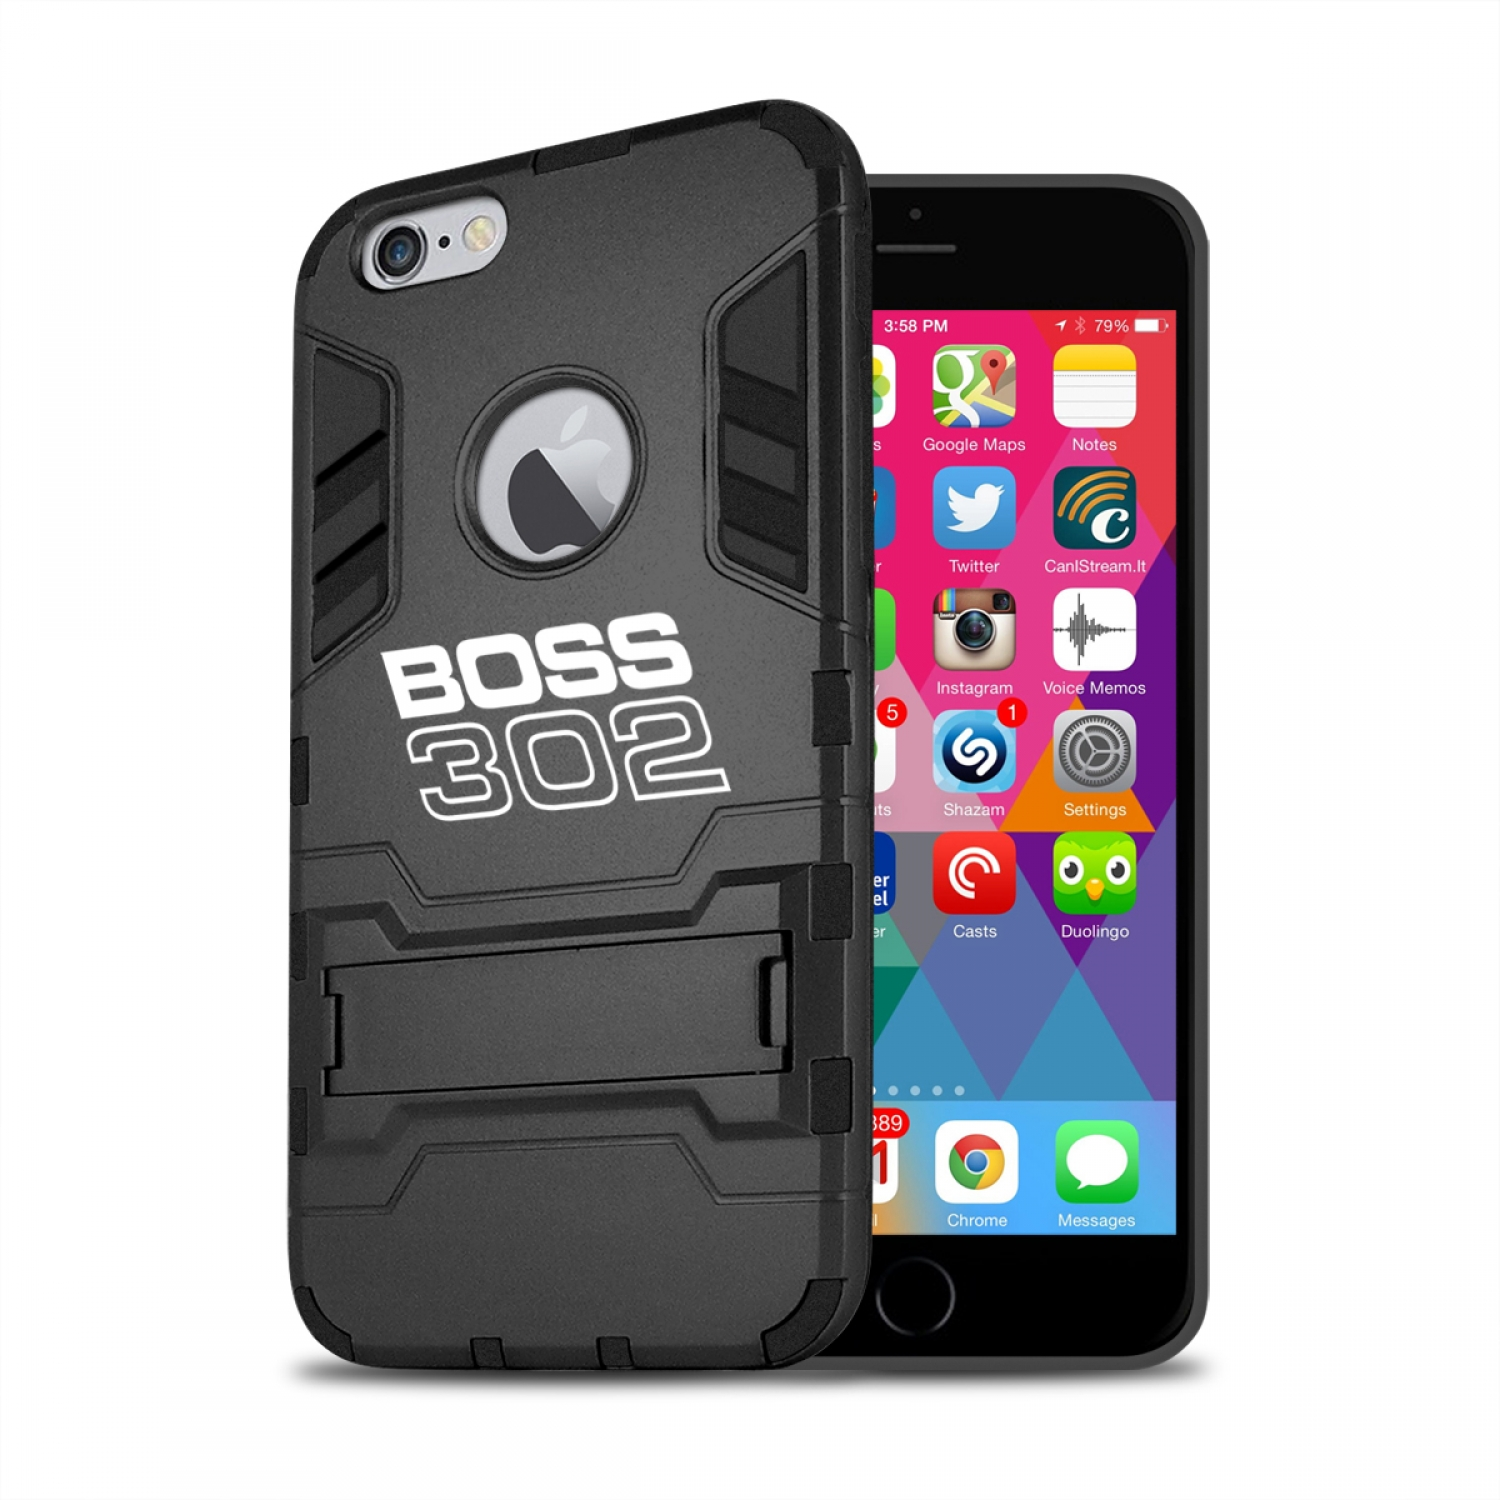 Ford Mustang Boss 302 iPhone 6 6s Shockproof TPU ABS Hybrid Black Phone Case